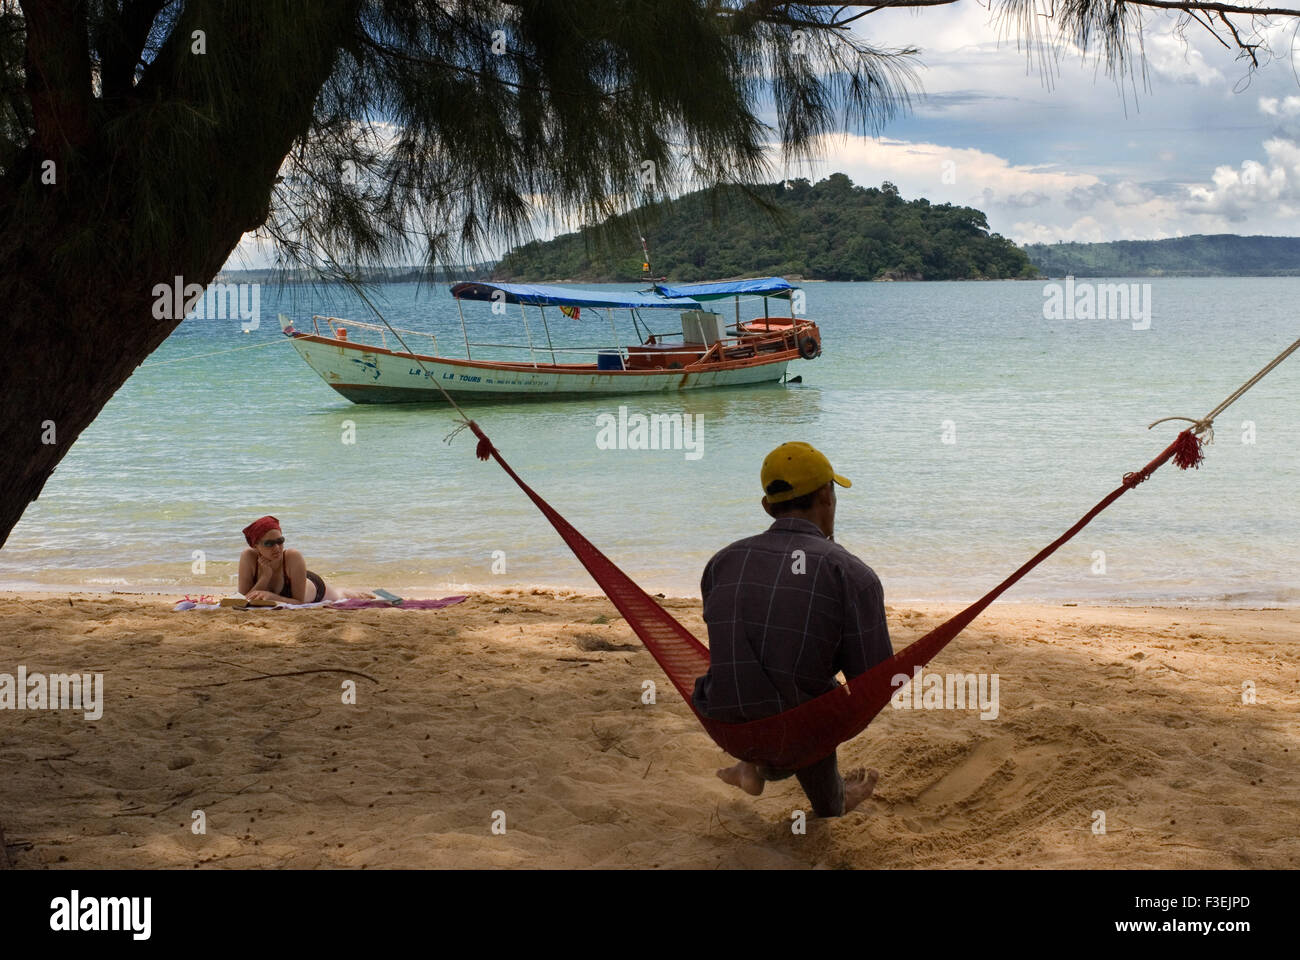 Lying in a hammock on the sea shore of the island of Koh Russei. Koh Russei (or Bamboo Island as it's commonly known) - Stock Image